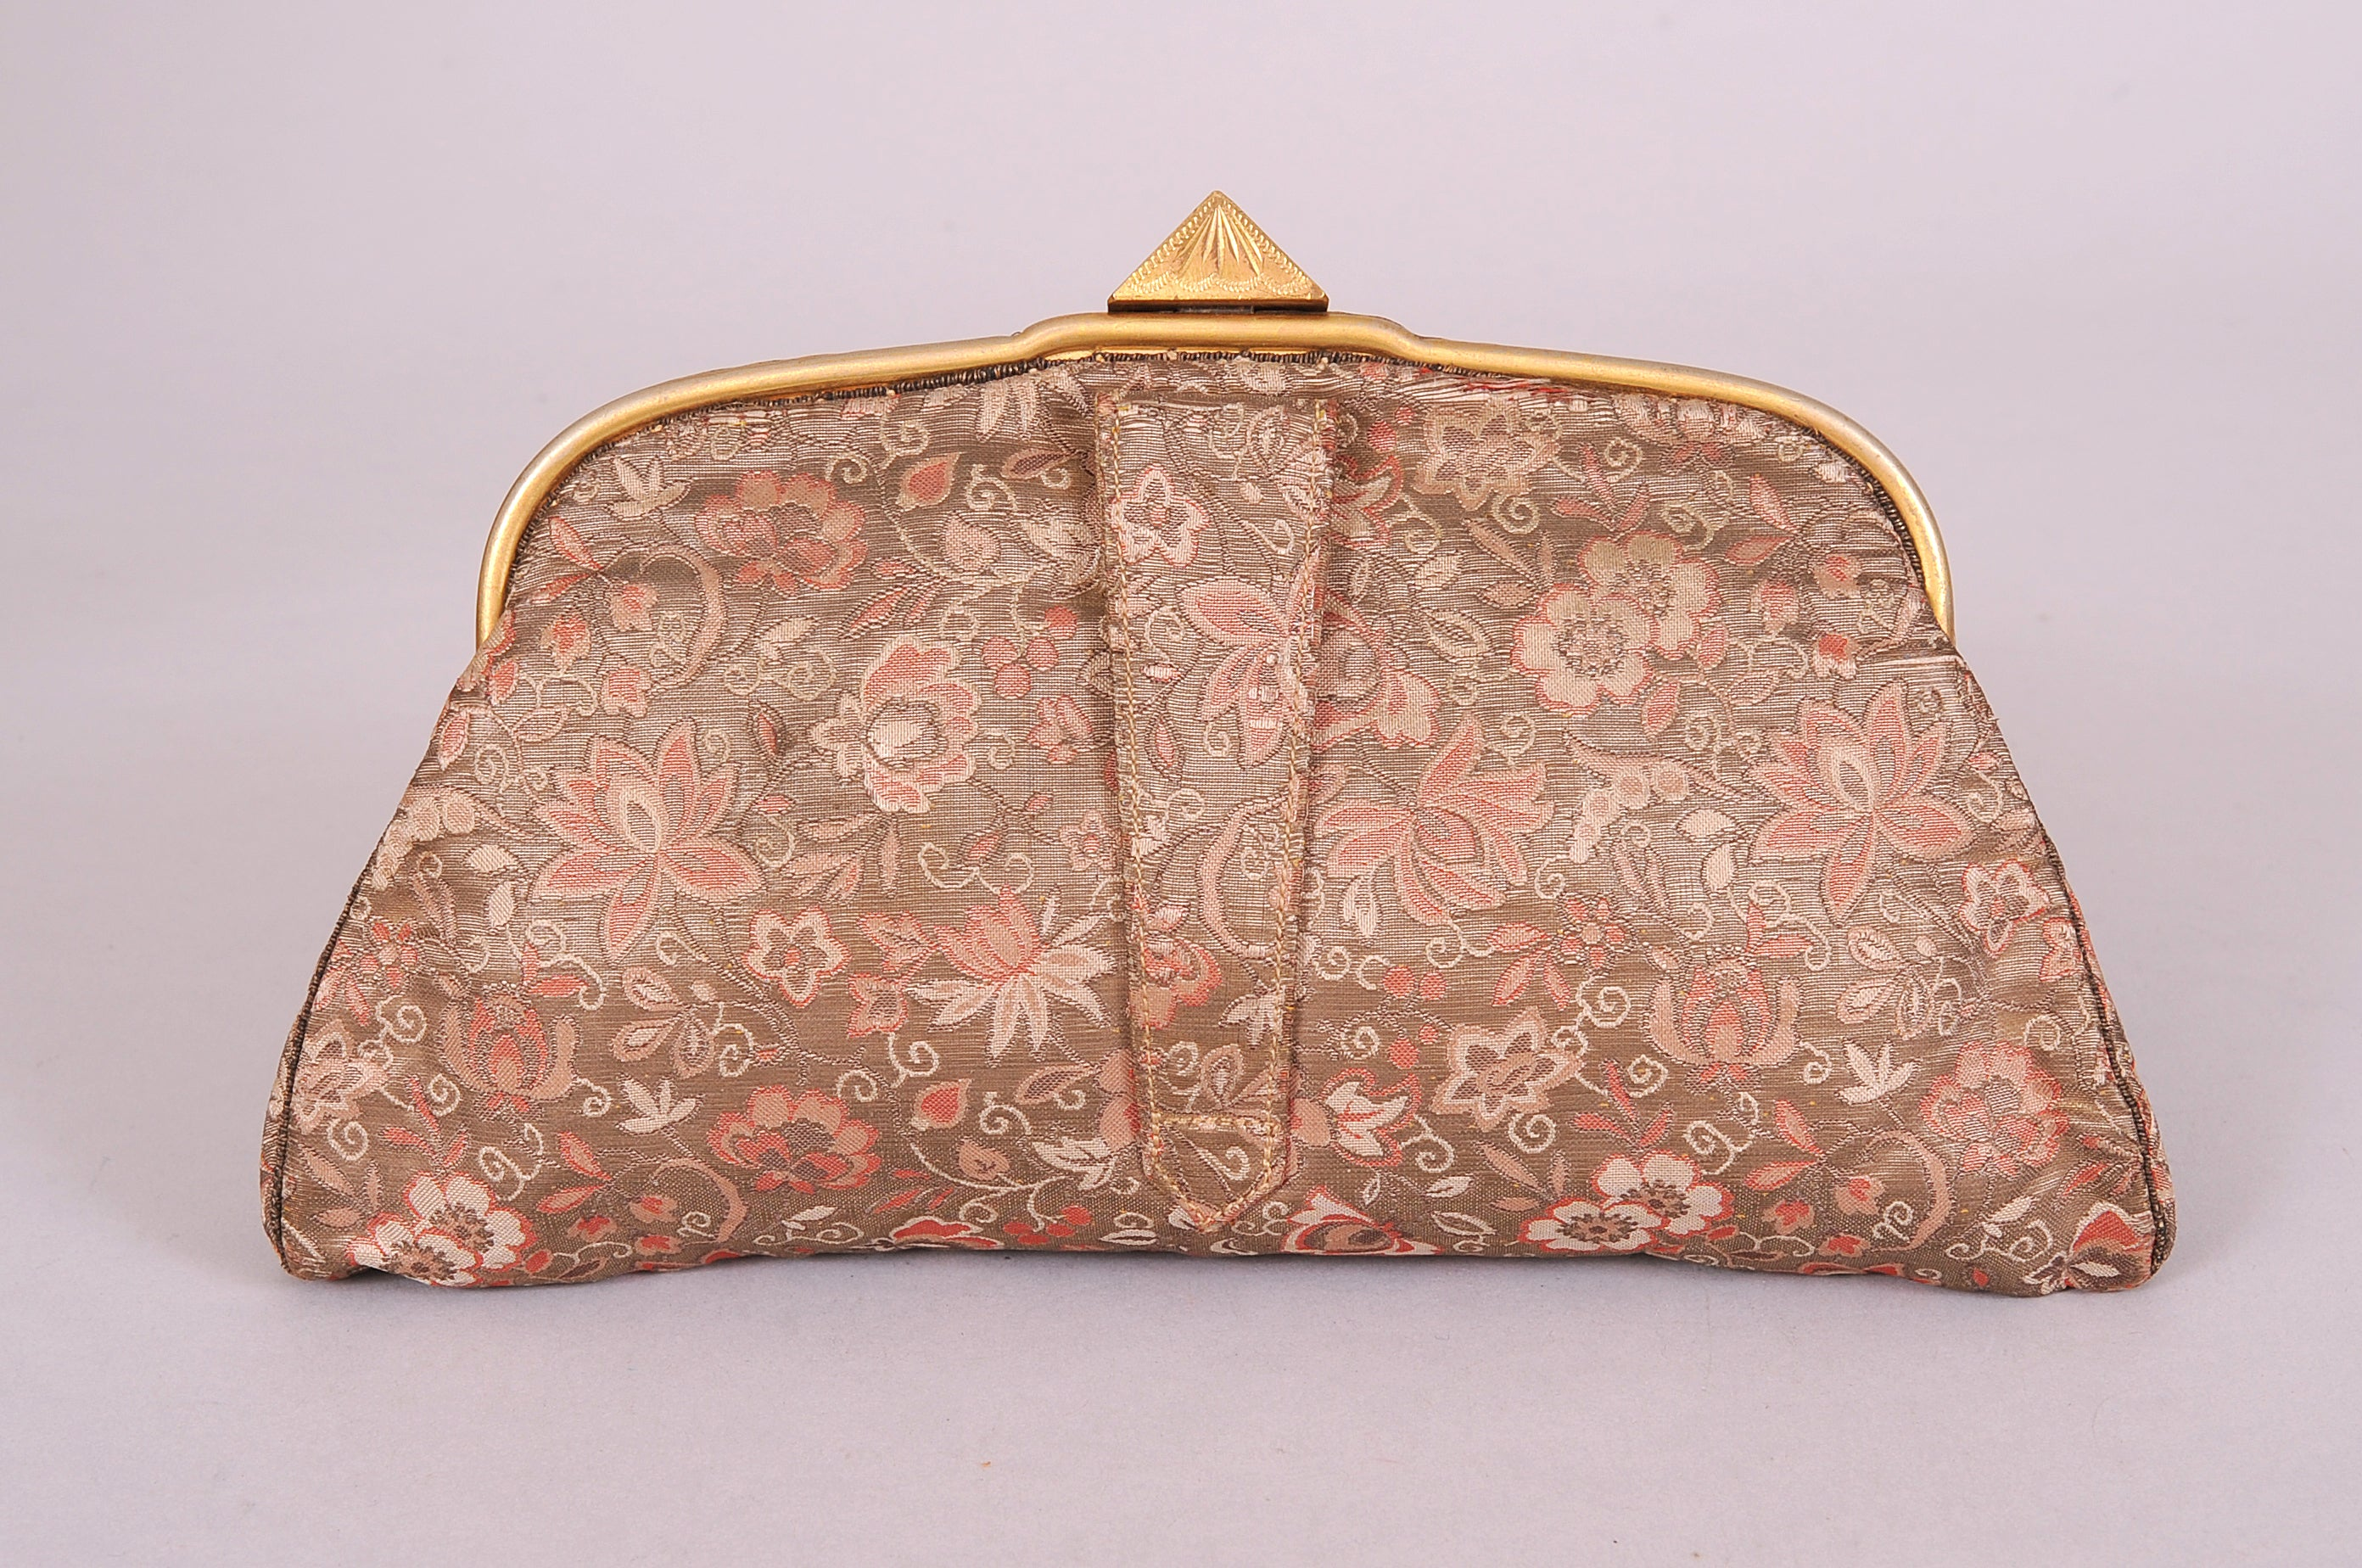 2e91d6749 20th Century Bag from 18th Century Russian Imperial Brocade A La Vieille  Russie For Sale at 1stdibs